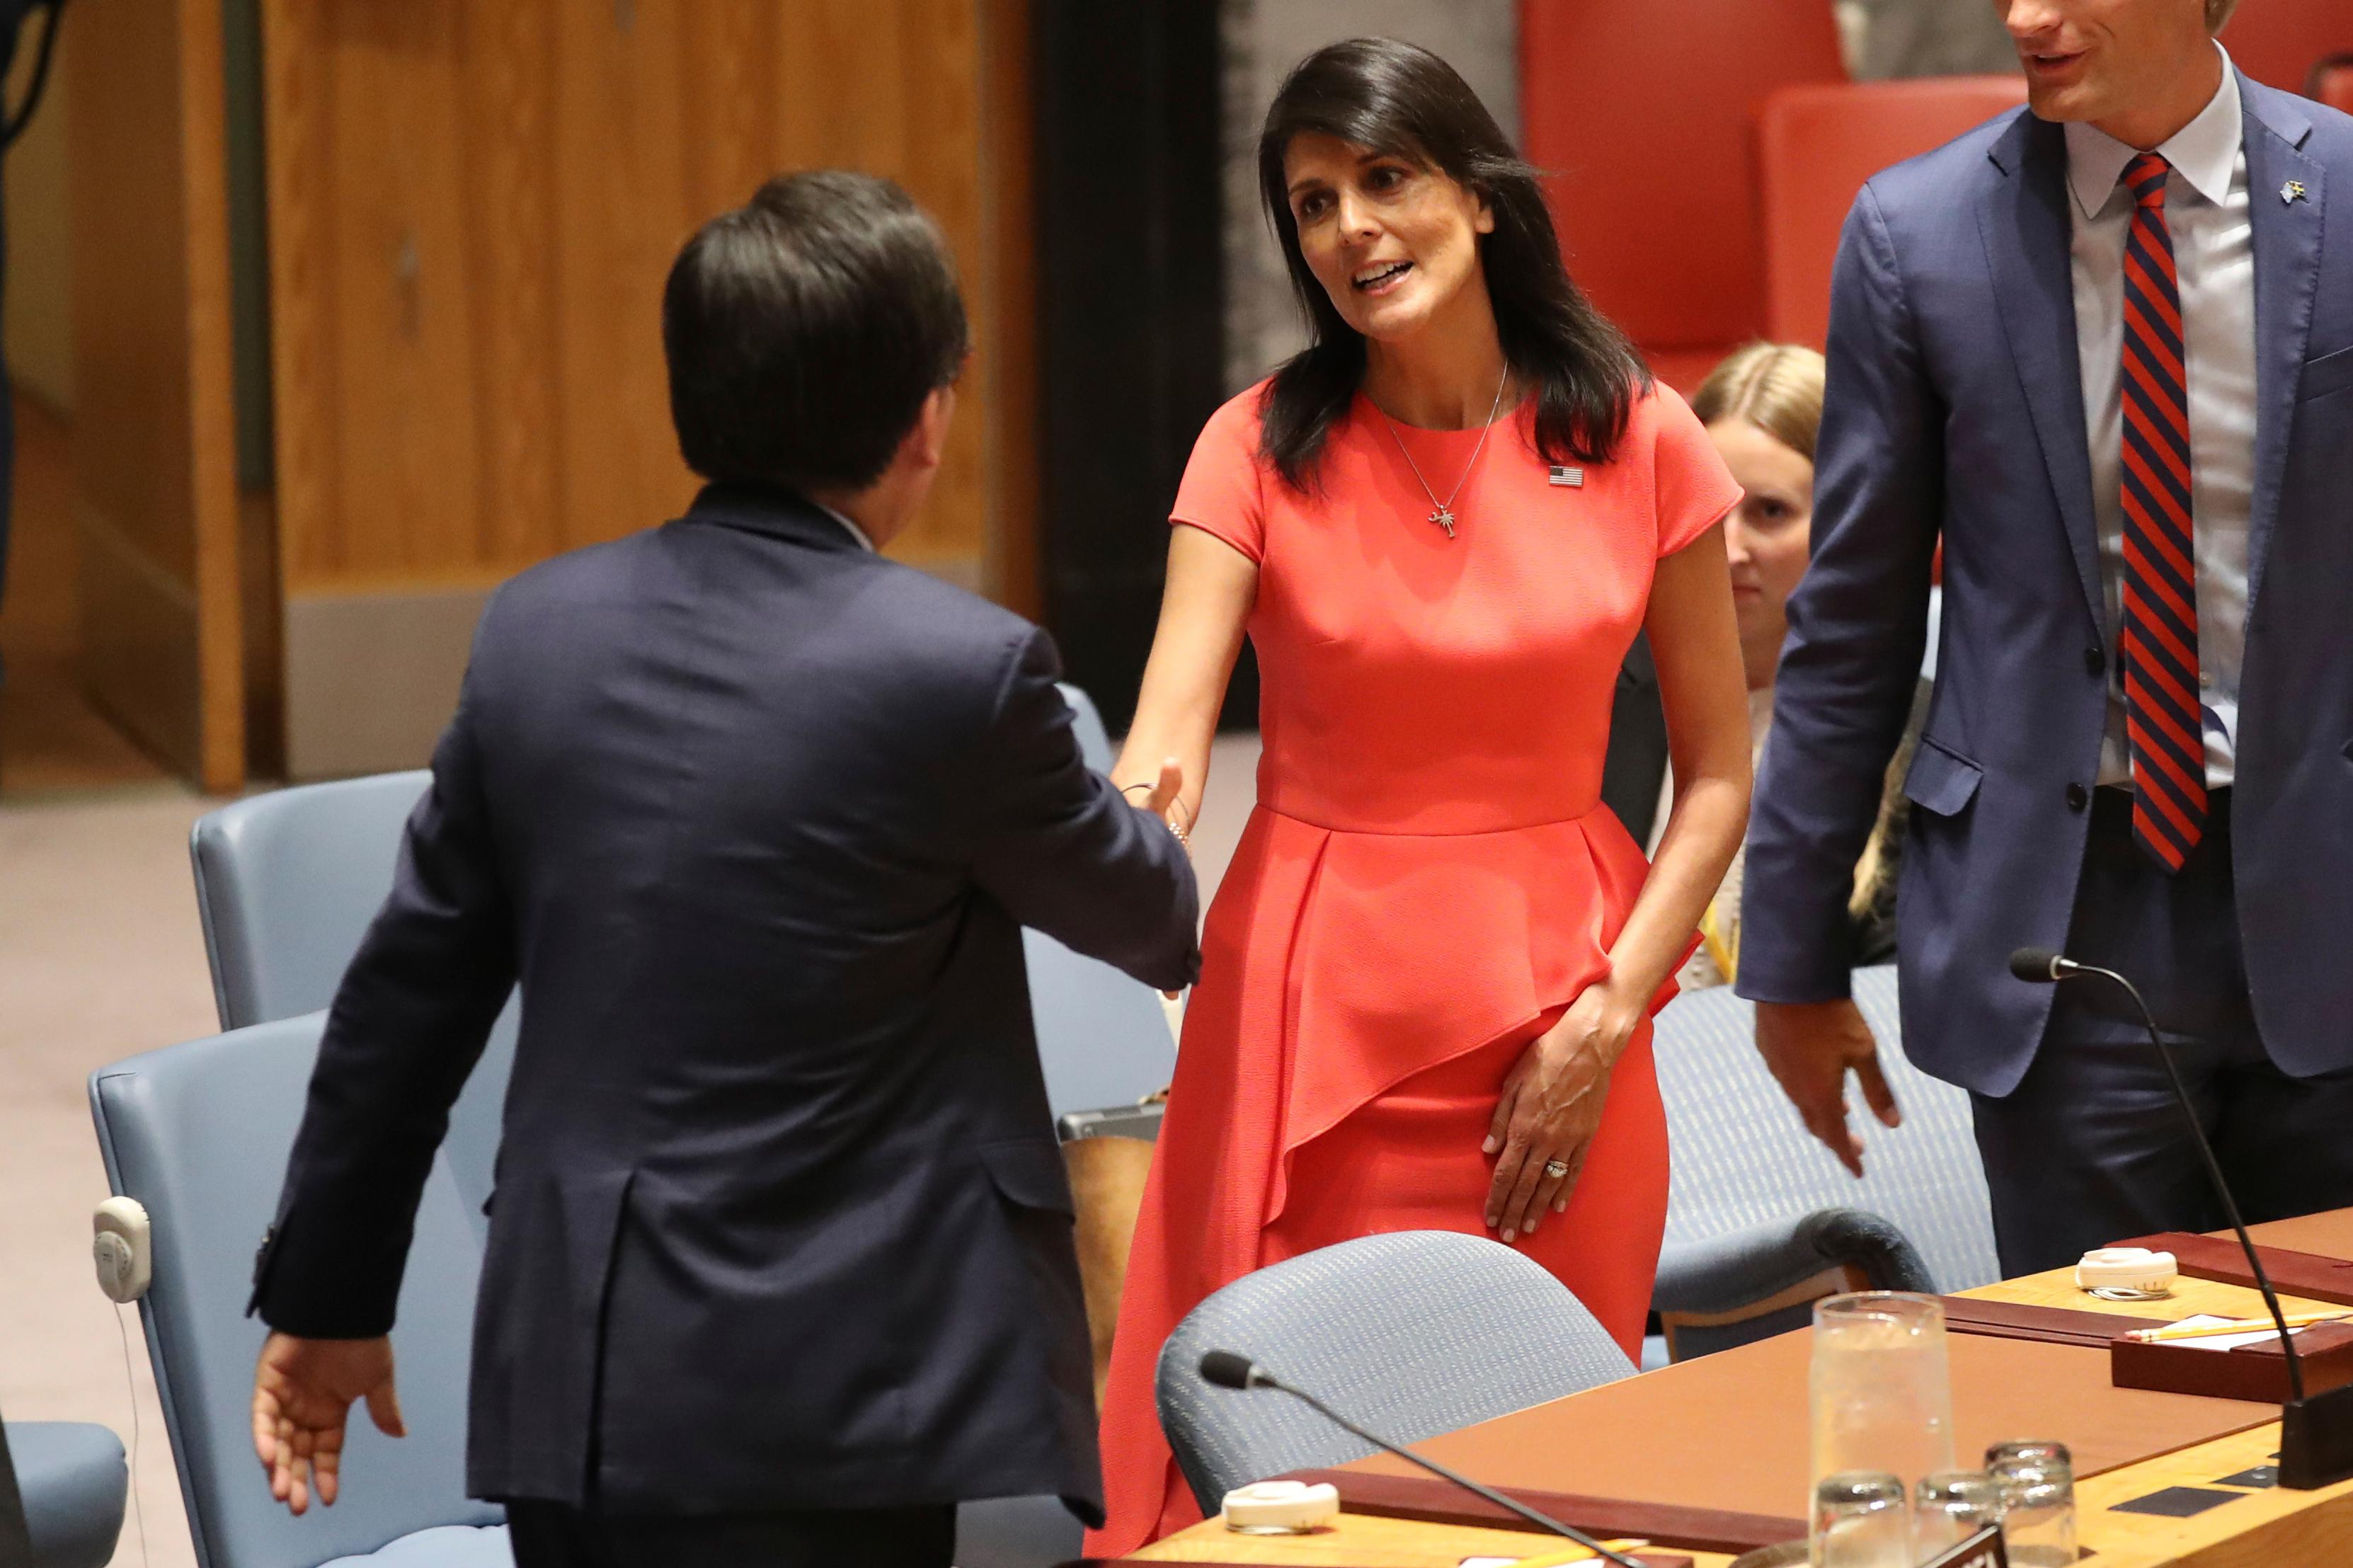 U.S. Ambassador to the United Nations Nikki Haley, right, speaks to South Korean Ambassador to the United Nations Cho Tae-yul before a Security Council vote on a new sanctions resolution that would increase economic pressure on North Korea to return to negotiations on its missile program, Saturday, Aug. 5, 2017 at U.N. headquarters. (AP Photo/Mary Altaffer)